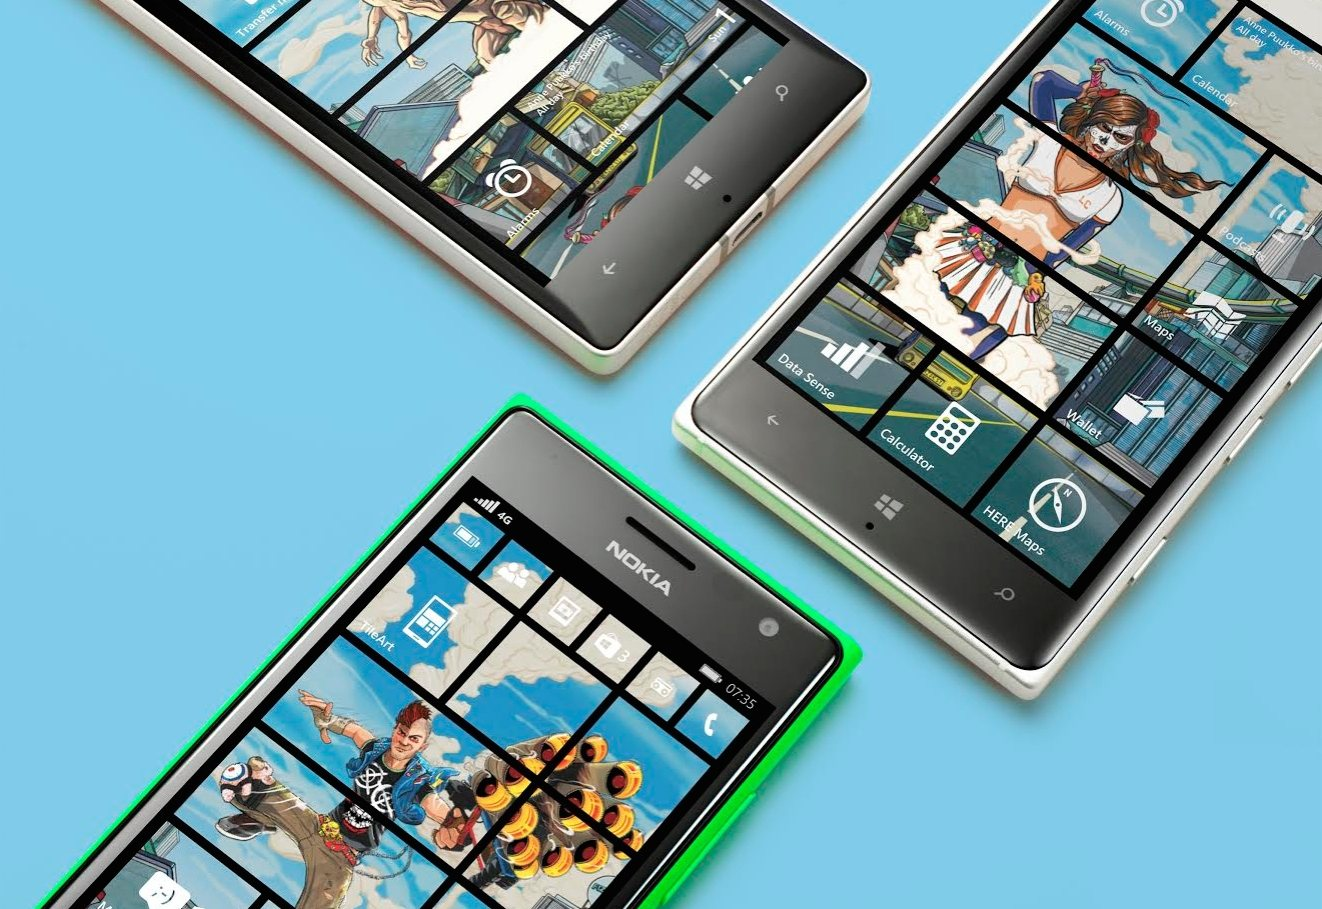 Microsoft Releases #TileArt Start Screen Customization App In Windows Phone Store 5